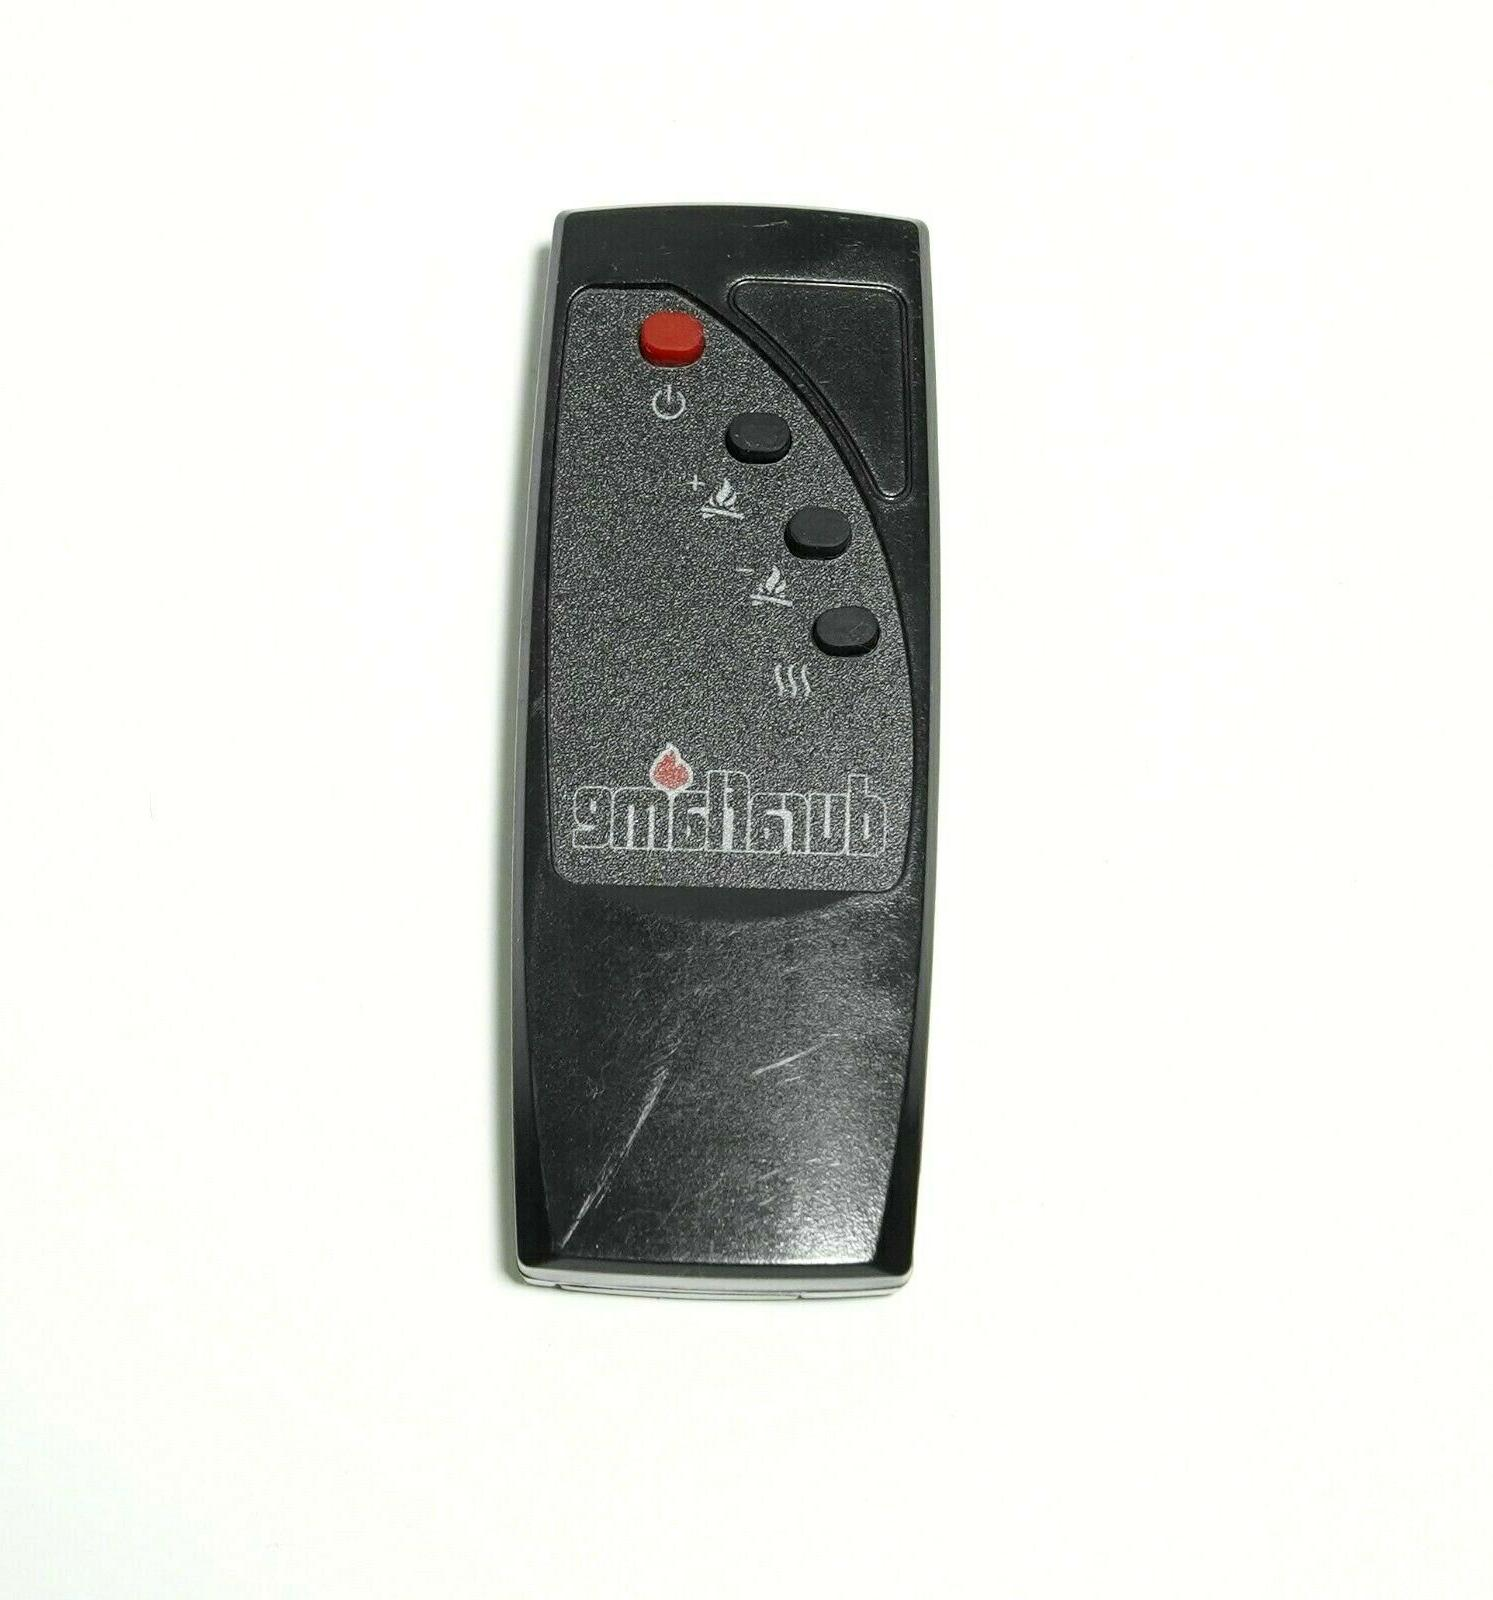 duraflame remote control for electric fireplace space